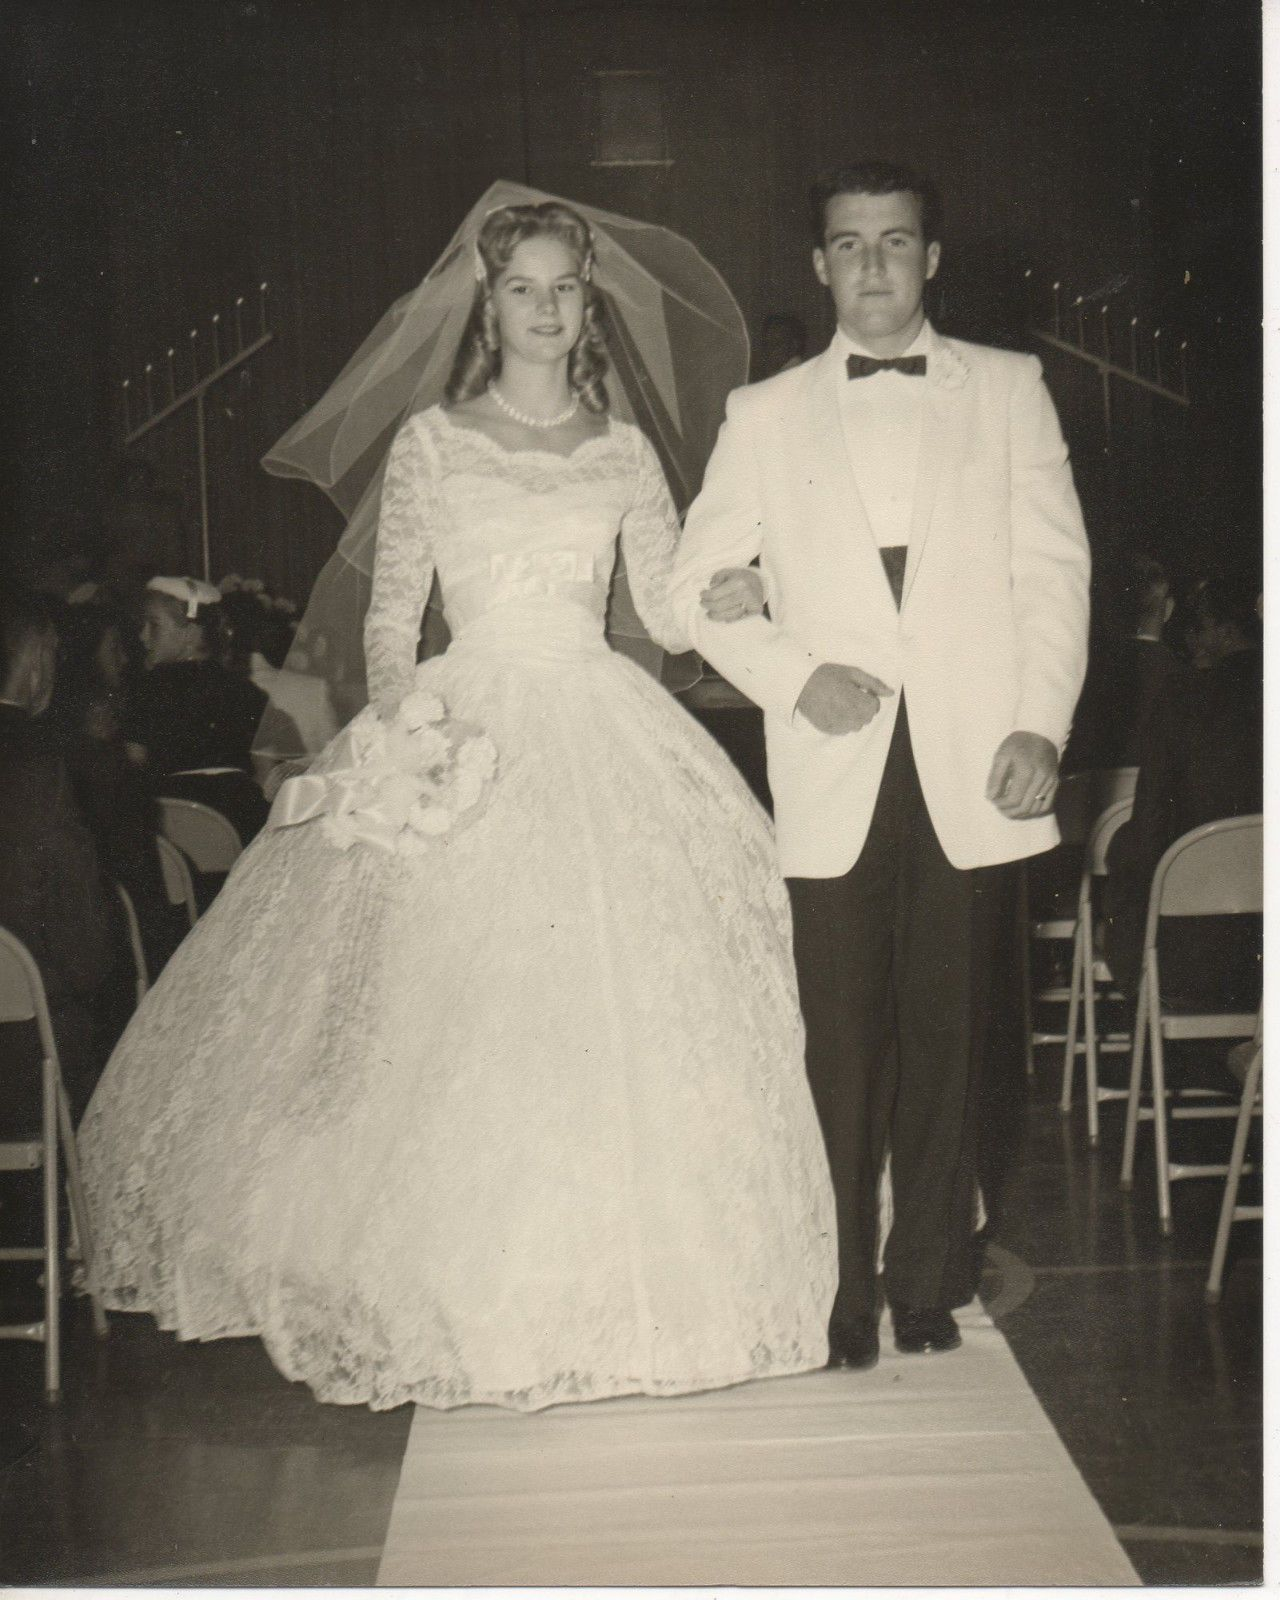 Vintage Wedding Dresses 1960s: Epiphany People: Brides And